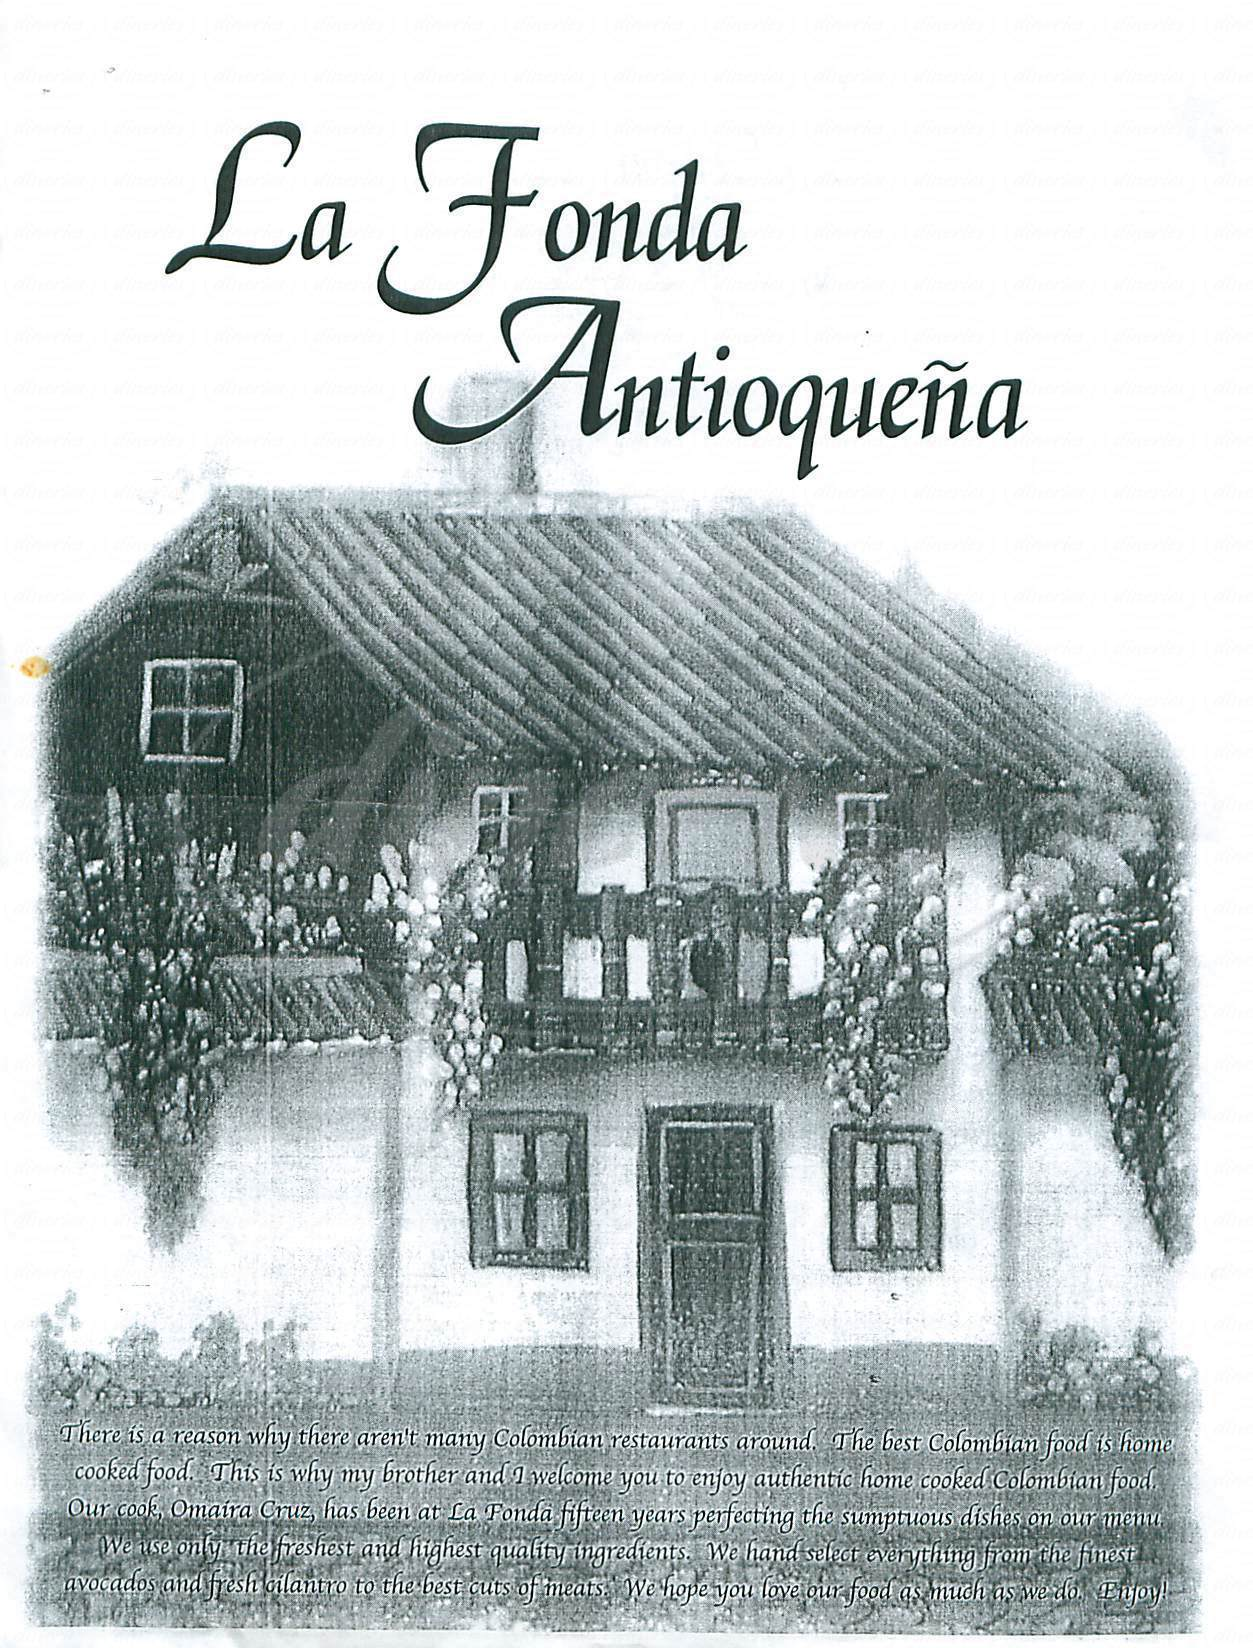 menu for La Fonda Antioquena